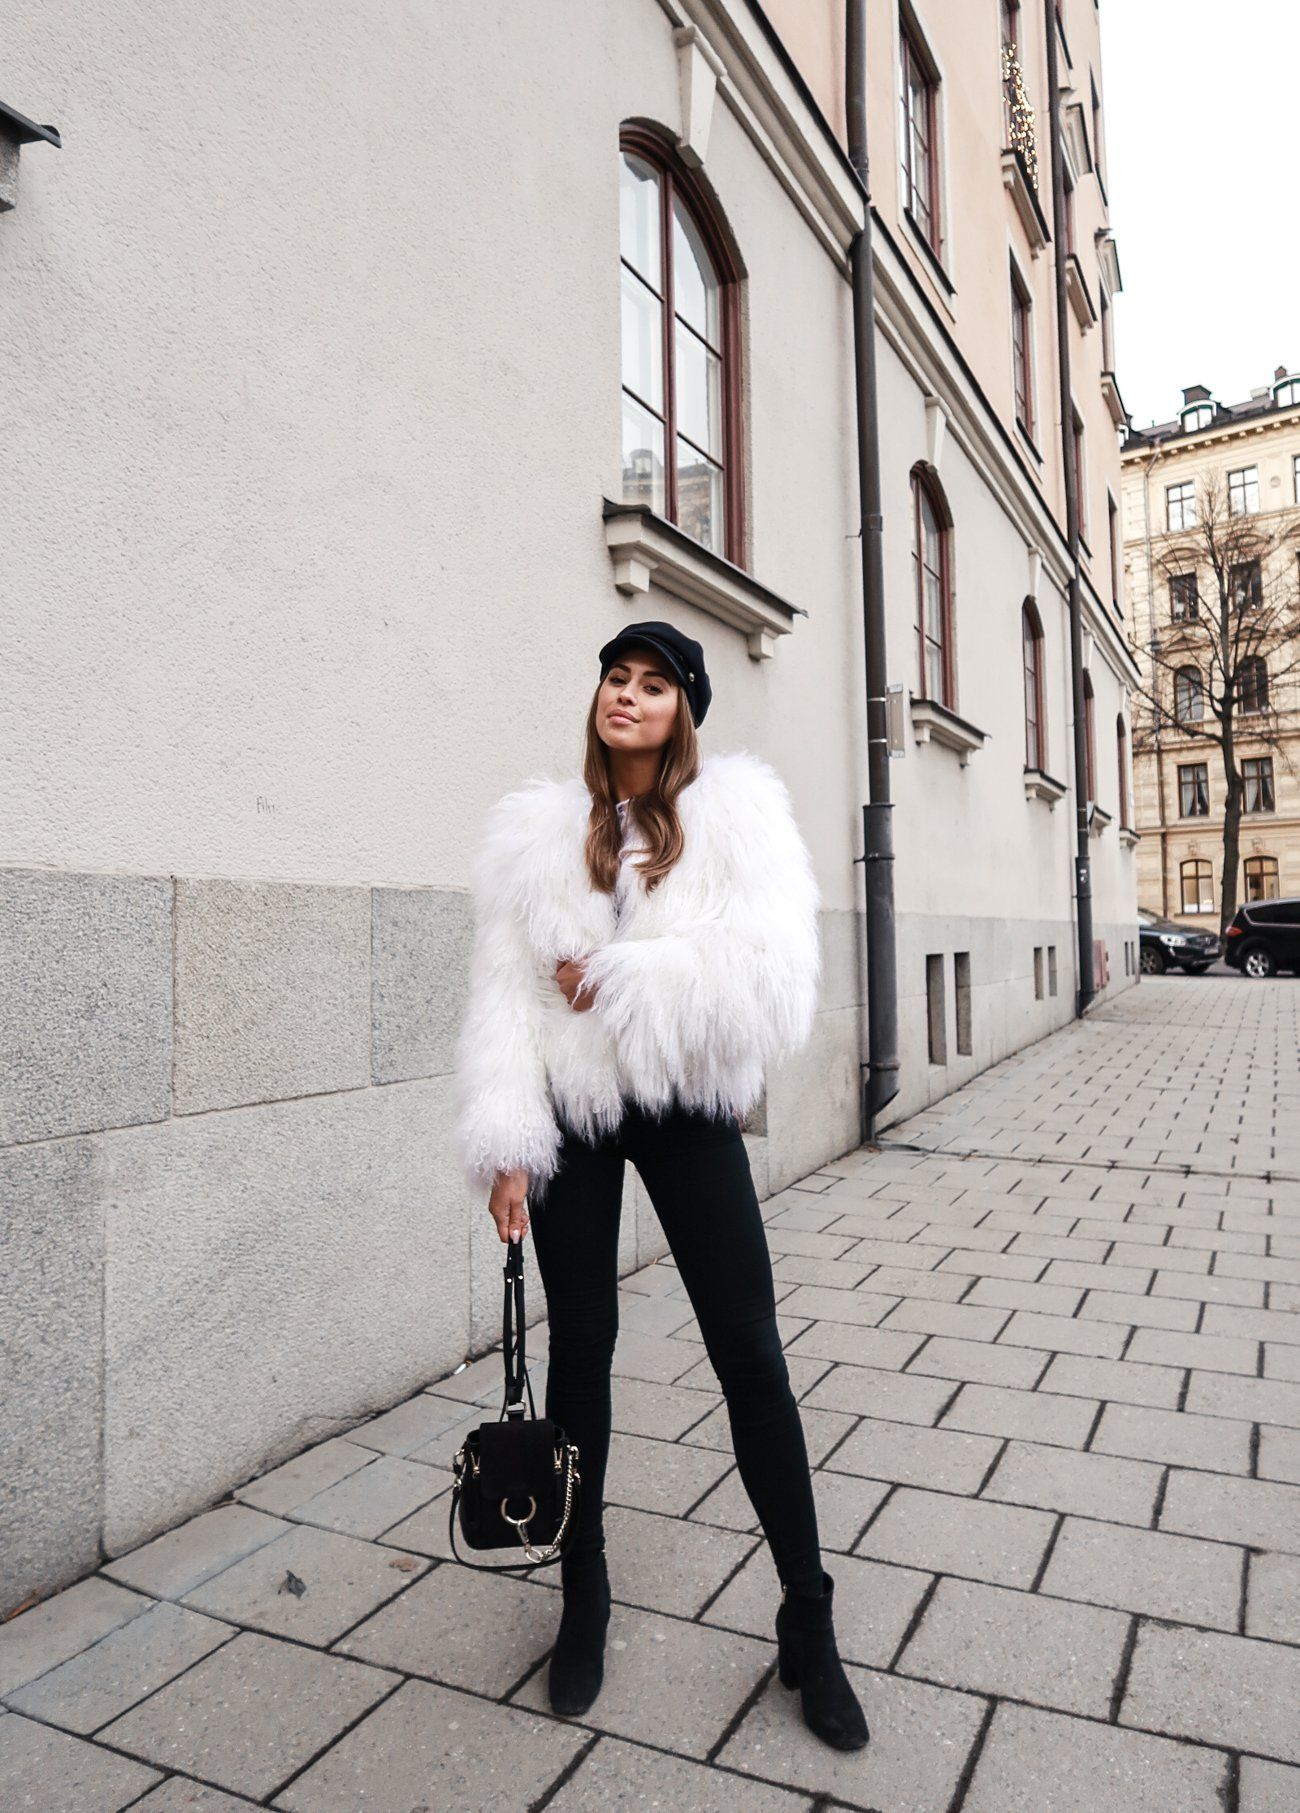 0c920040d2a9 faux fur for real. FASHION BLOGGER STYLE - KENZA  howtochic  ootd  outfit